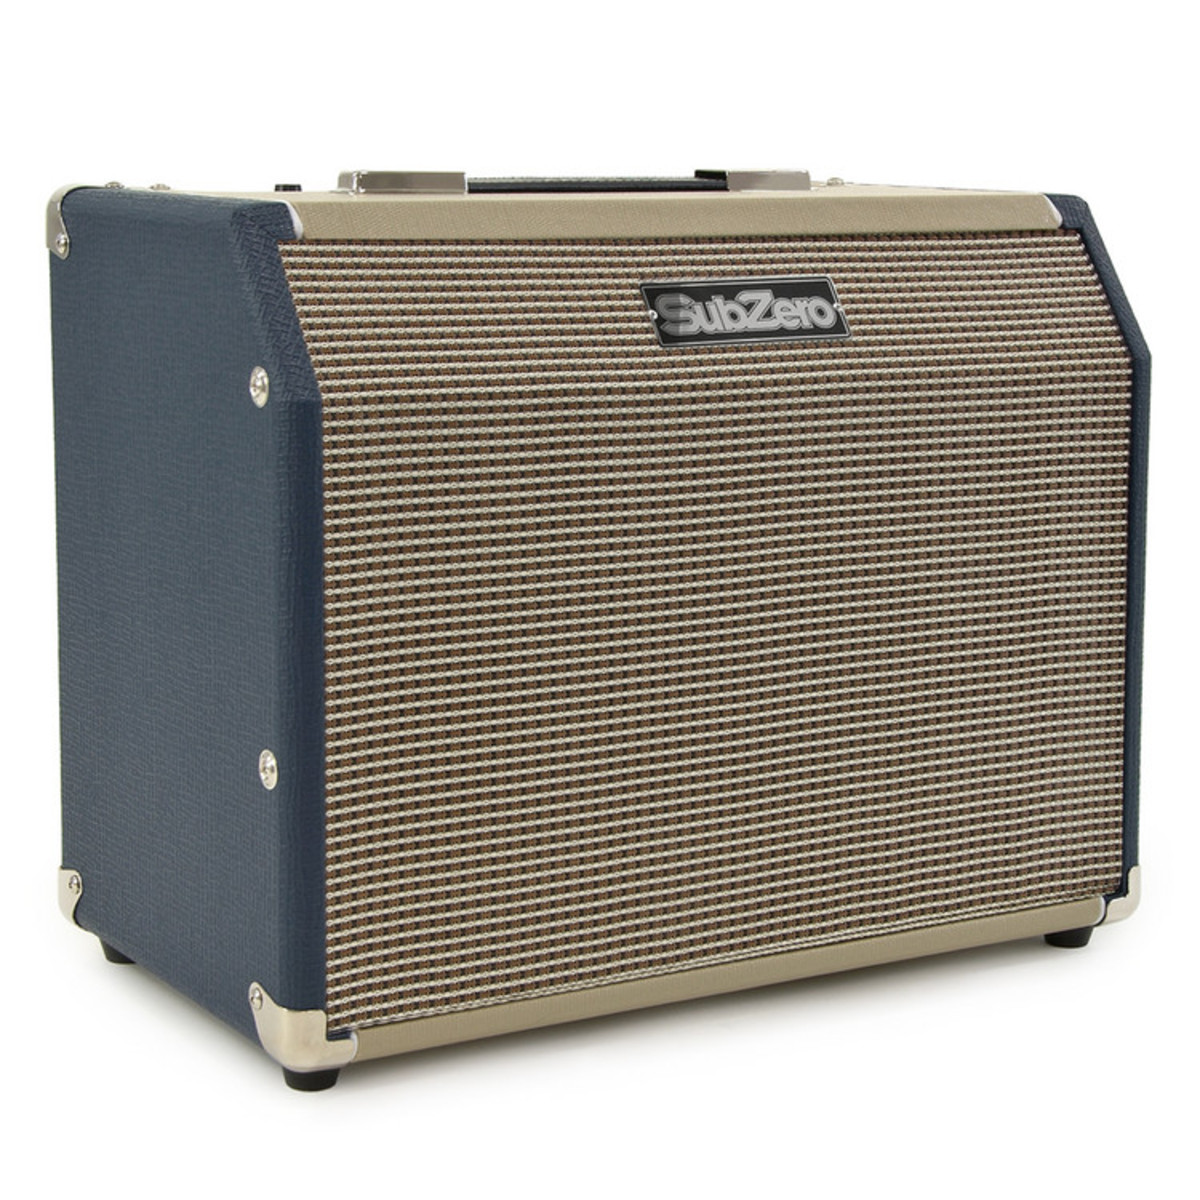 subzero 25w acoustic guitar amp with chorus nearly new at gear4music. Black Bedroom Furniture Sets. Home Design Ideas